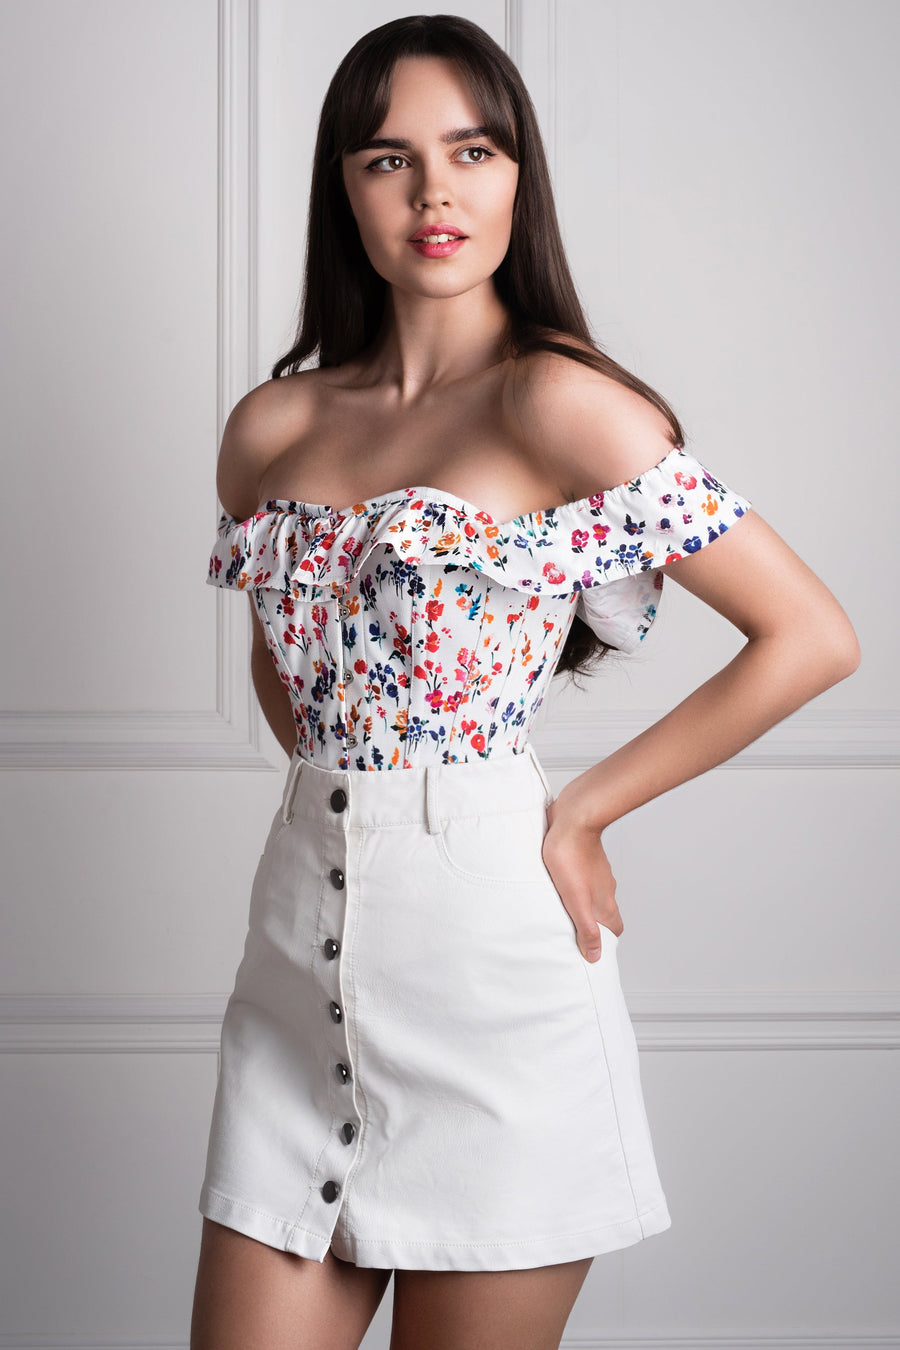 Top a corsetto in cotone con fantasia floreale